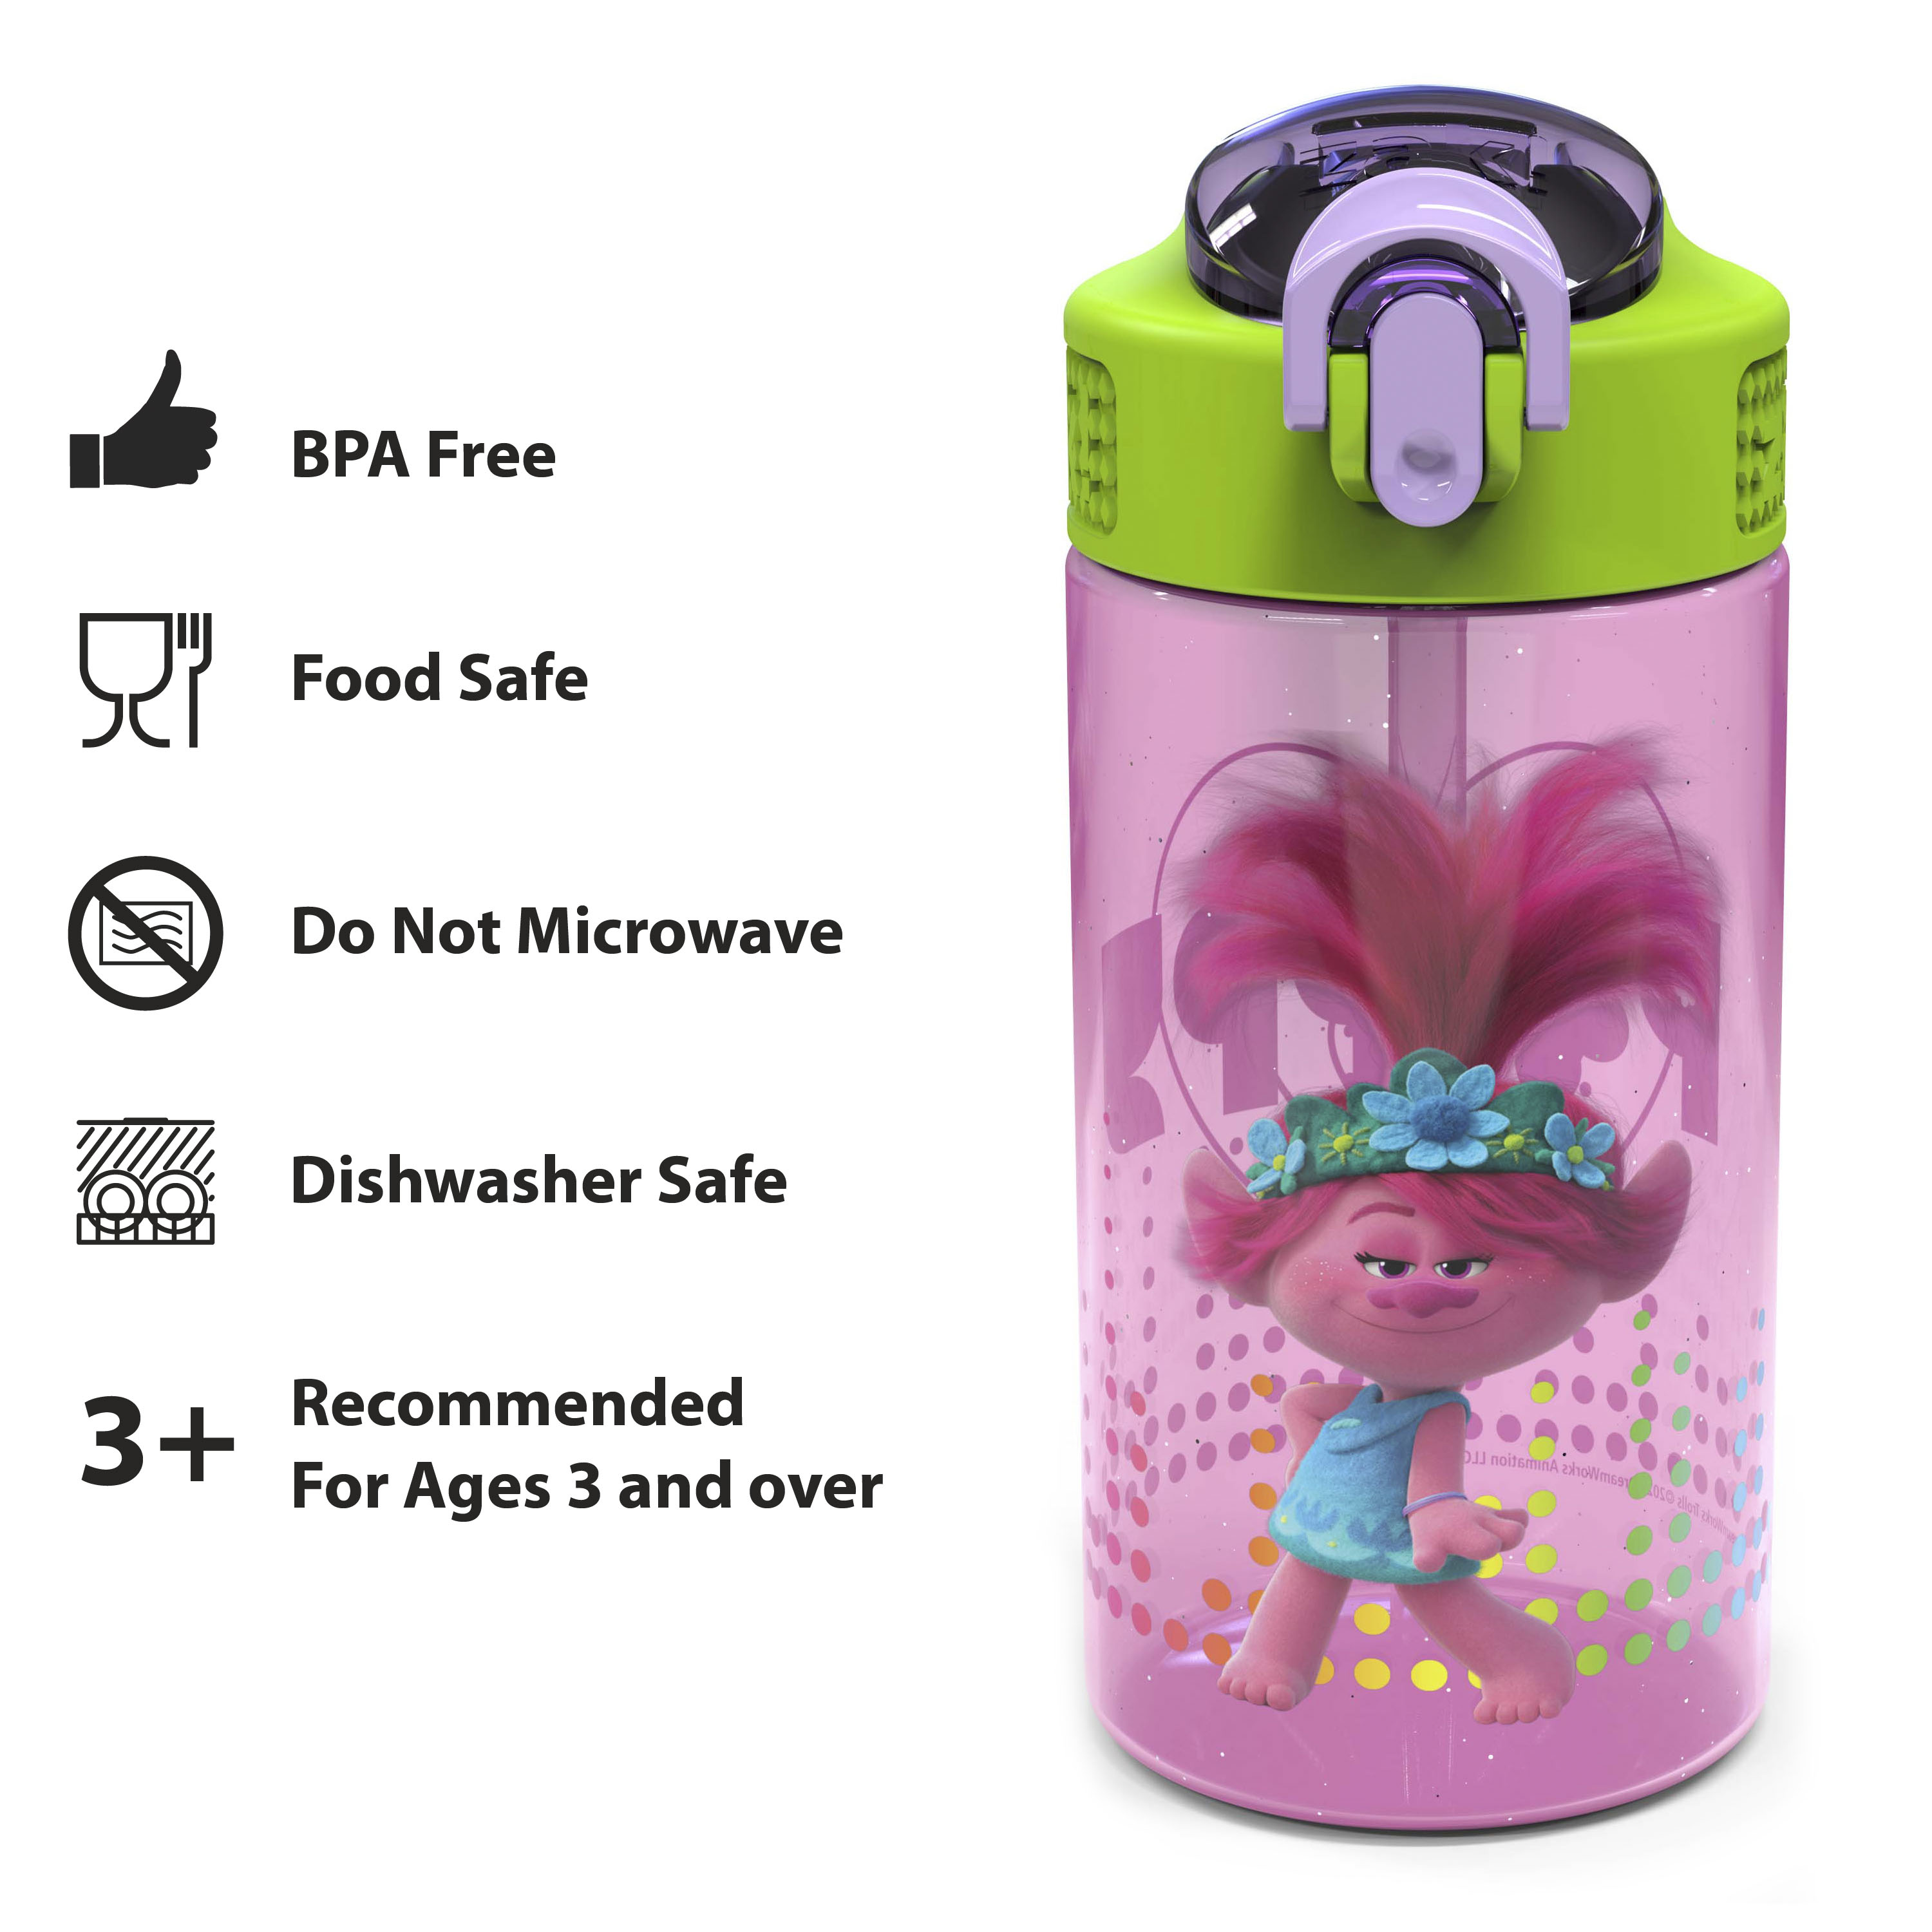 Trolls 2 Movie 16 ounce Reusable Plastic Water Bottle with Straw, Poppy, 2-piece set slideshow image 5